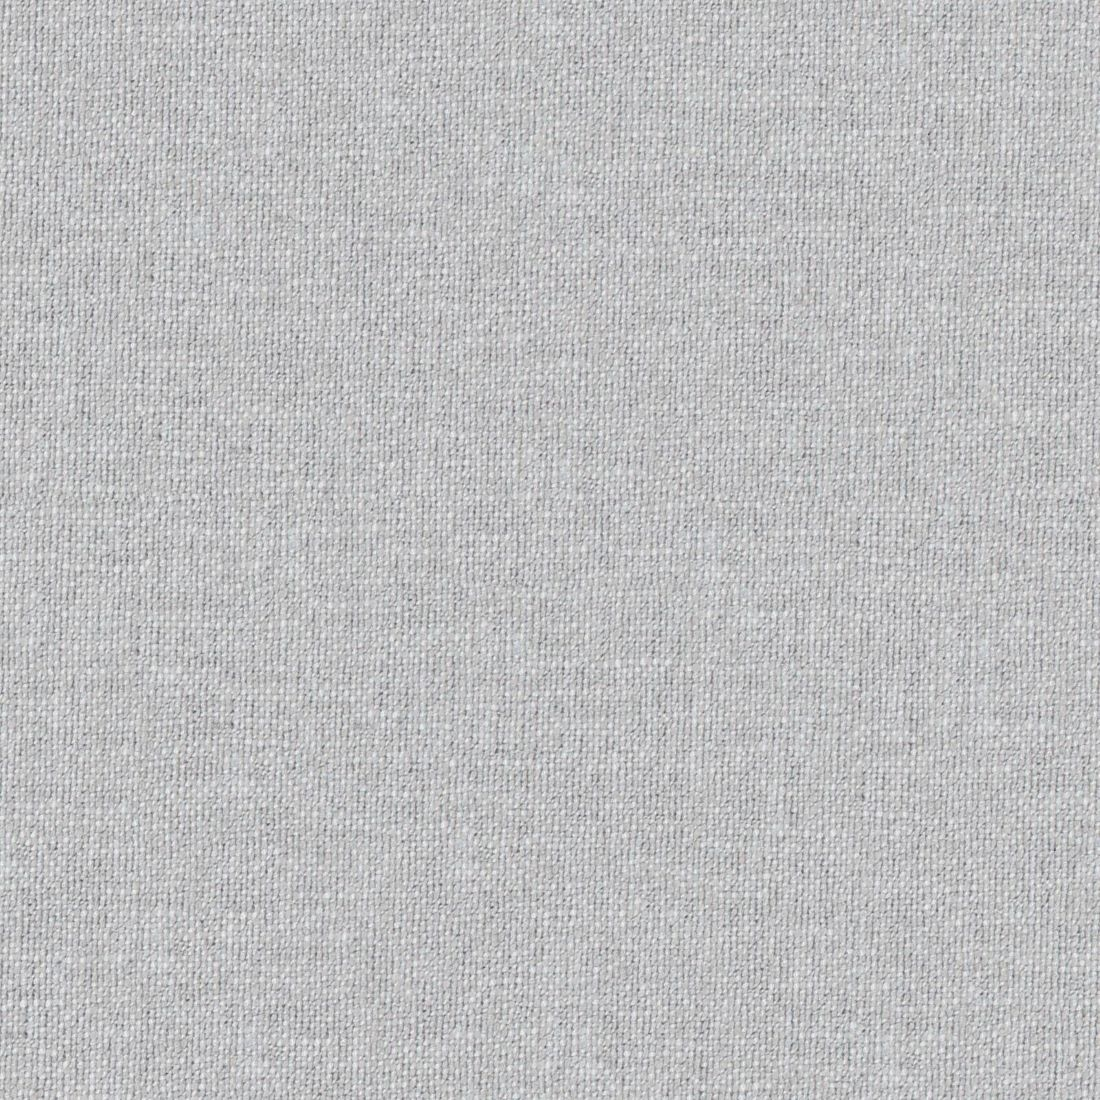 Casual Misty Upholstery Fabric